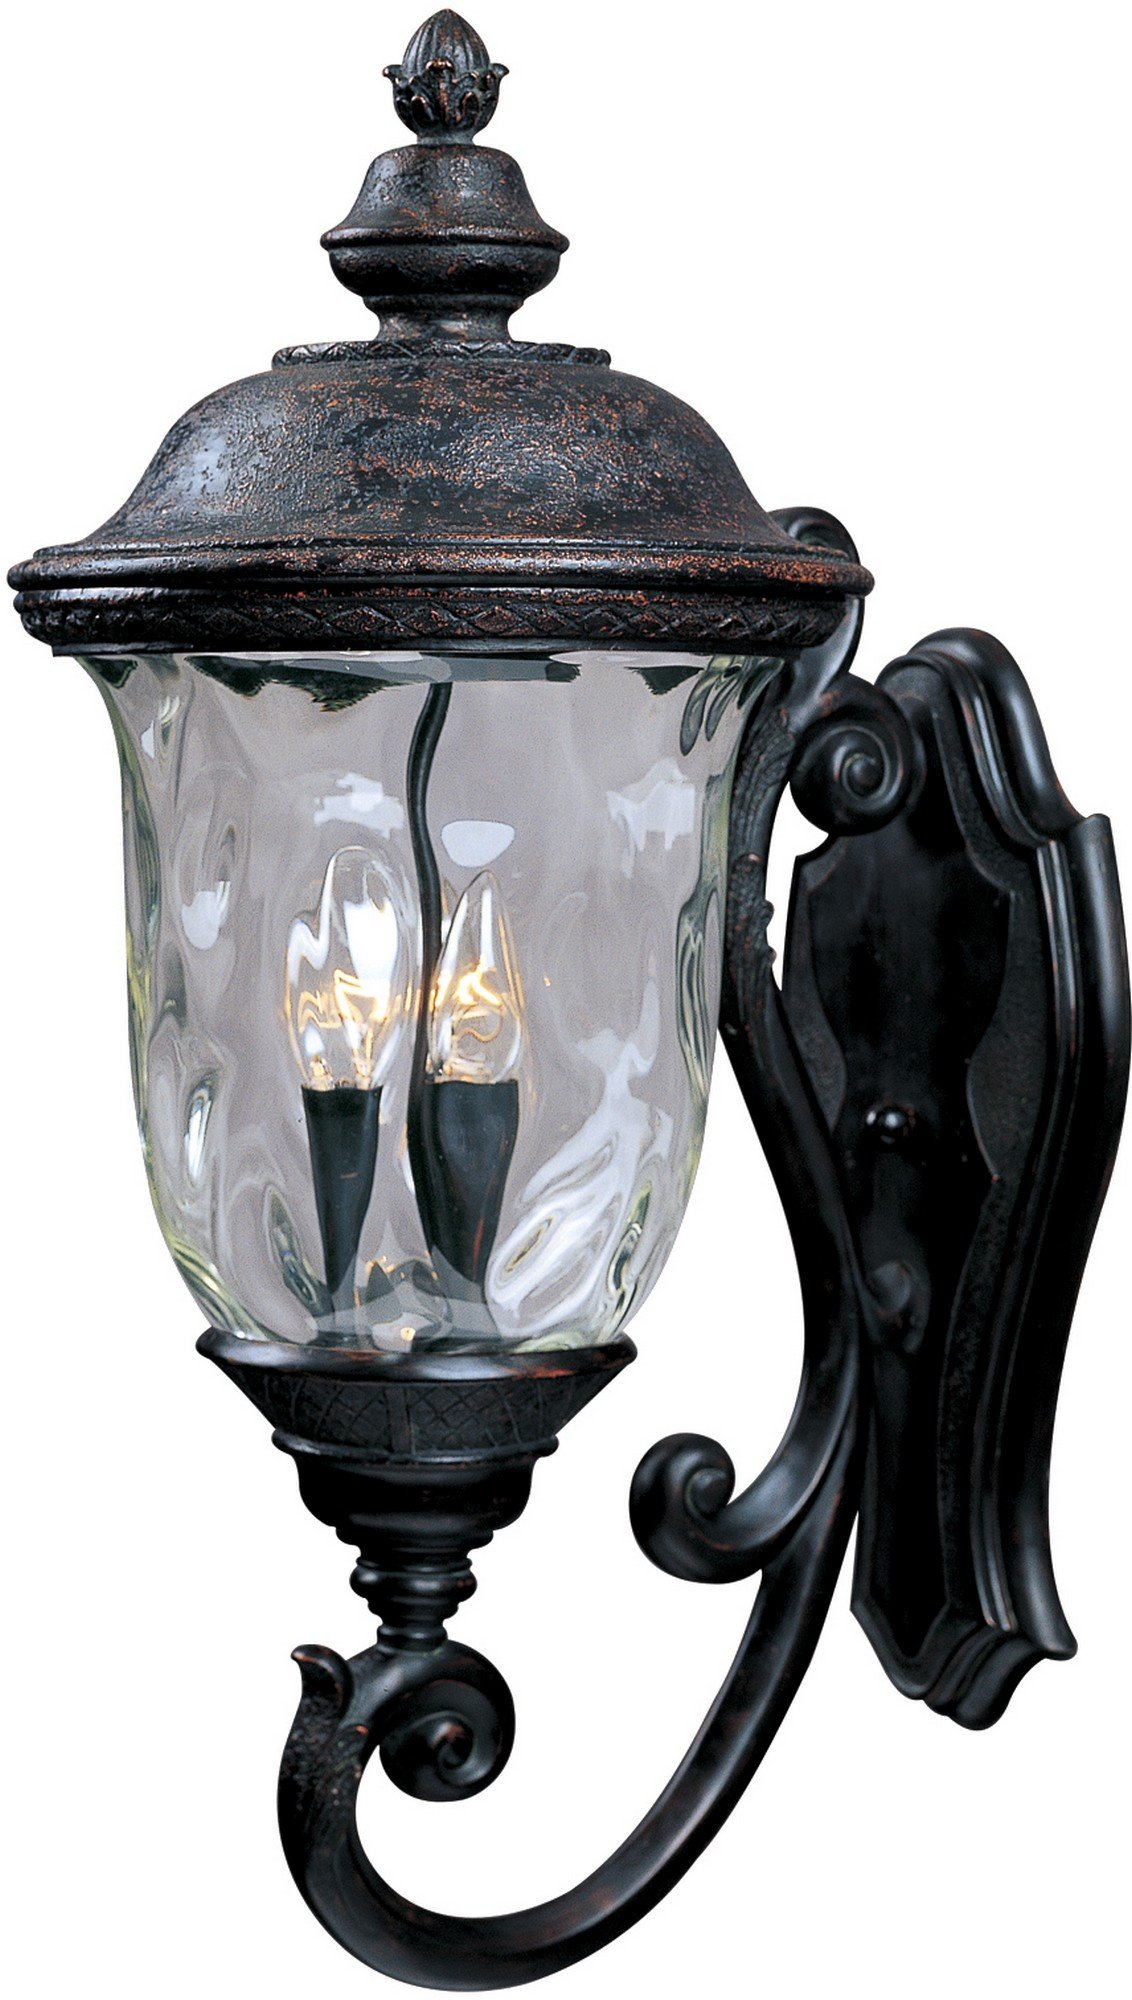 Maxim Lighting 3424WGOB Carriage House DC 3-Light Bottom Mount Outdoor 26.5-Inch Wall Lantern, Oriental Bronze Finish